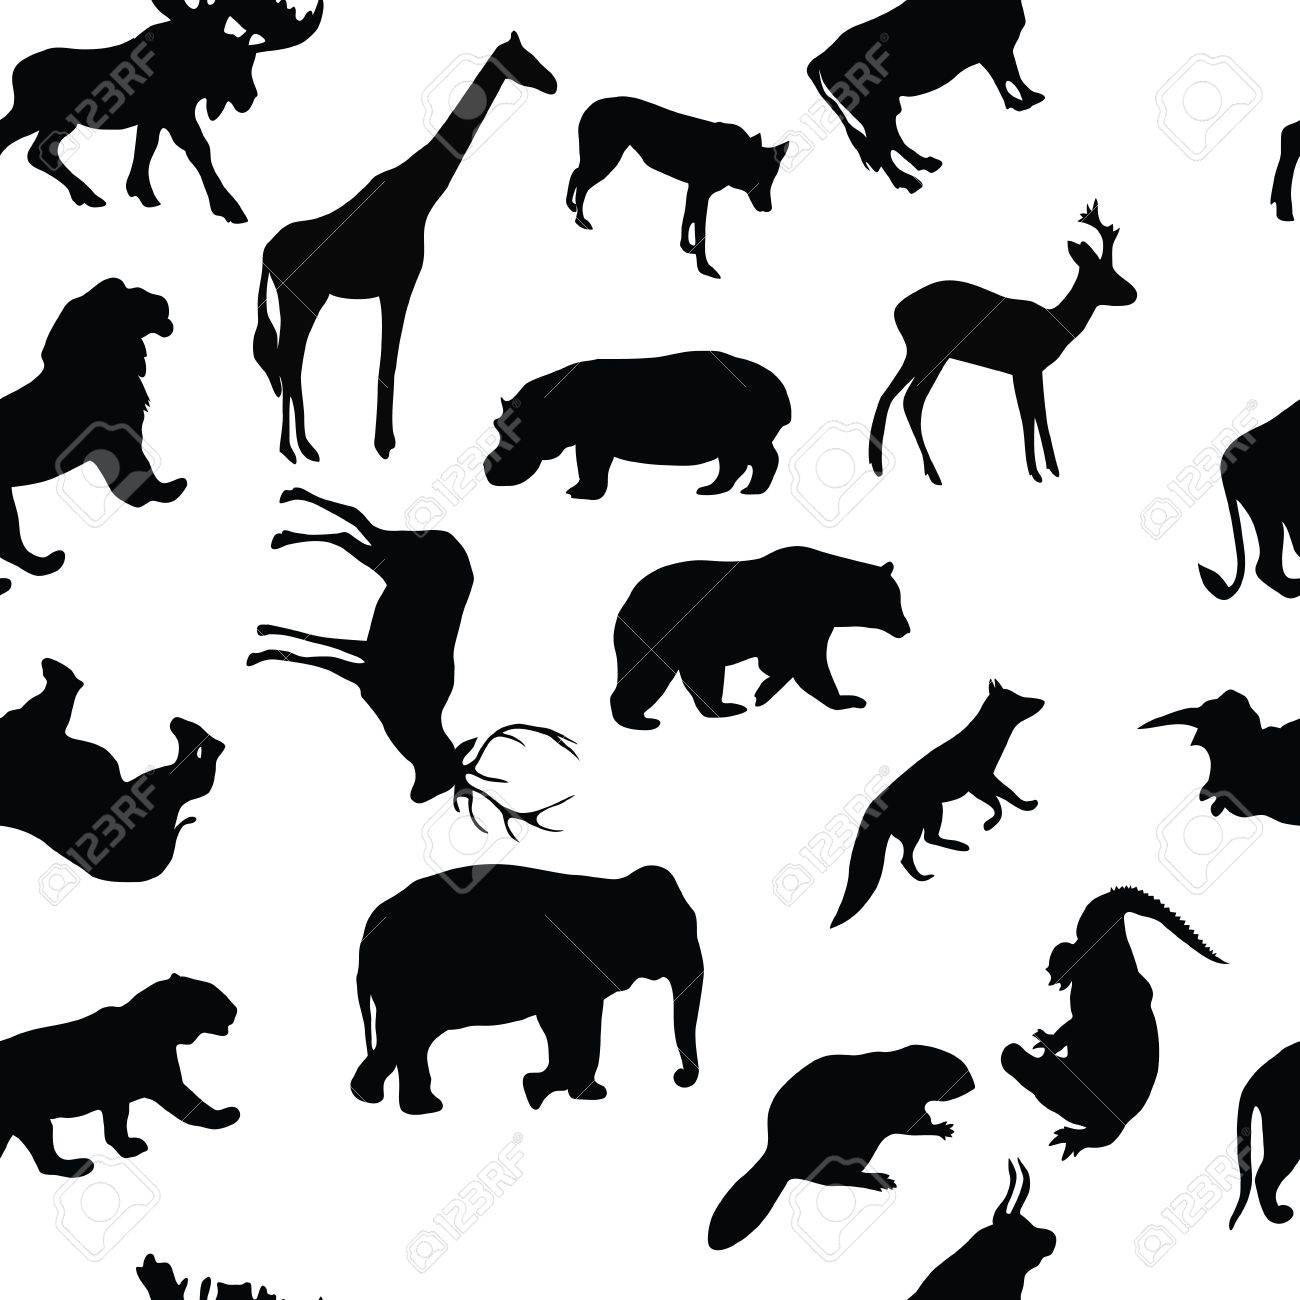 1 674 wildlife beaver cliparts stock vector and royalty free